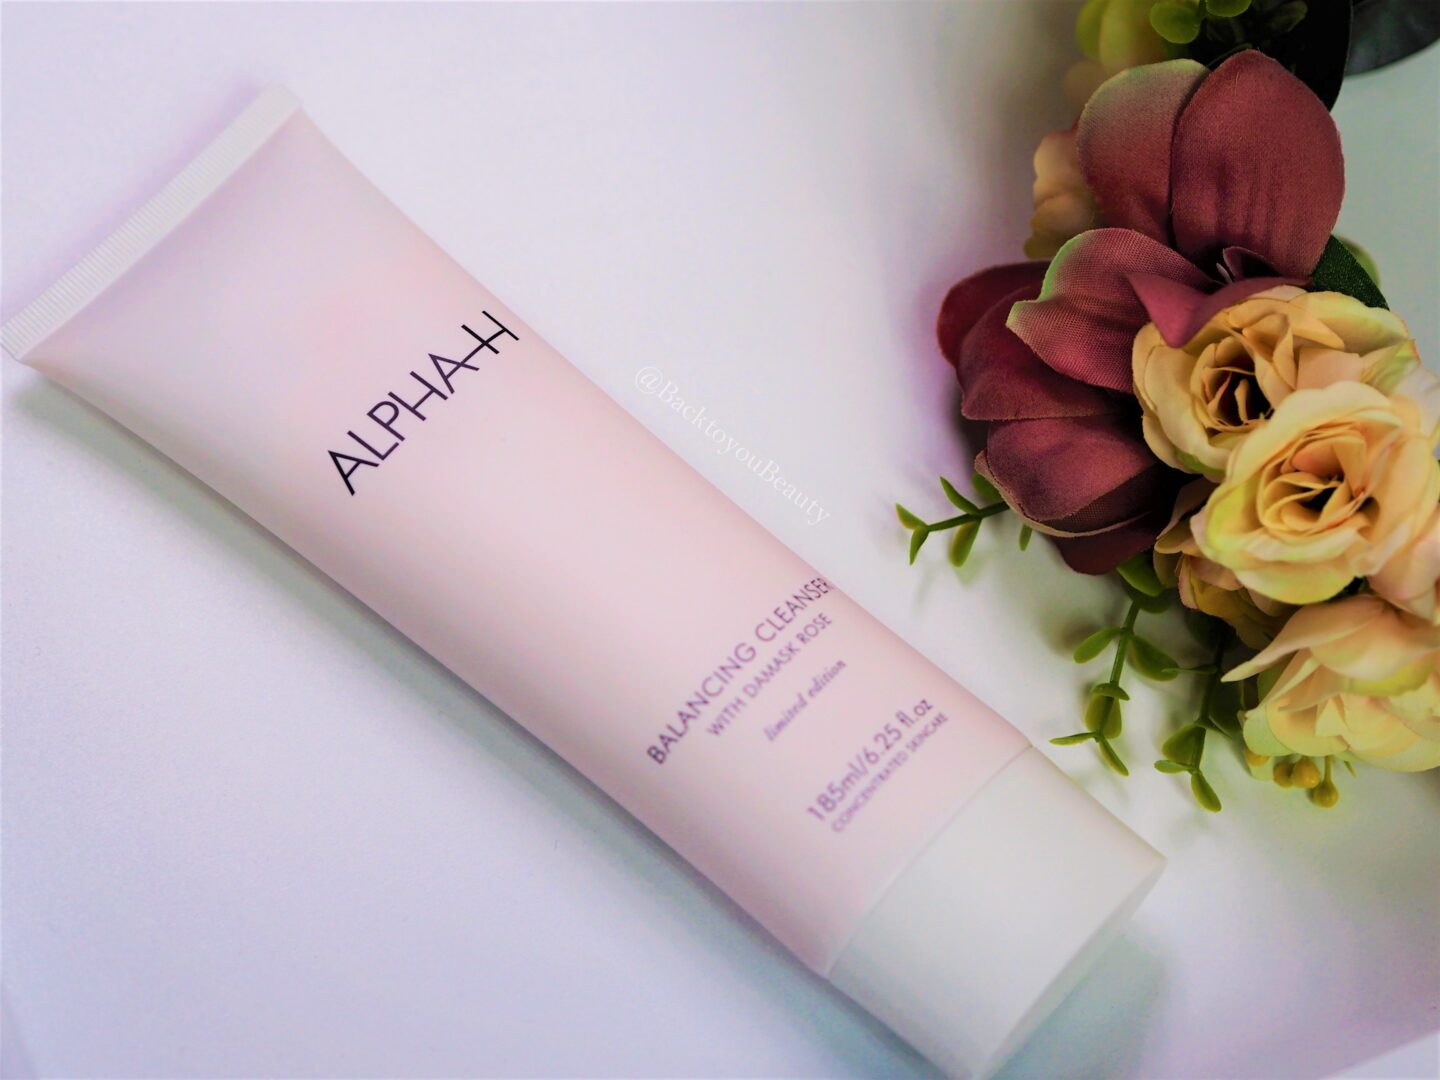 Alpha H Limited Edition Balancing Cleanser with Damask Rose